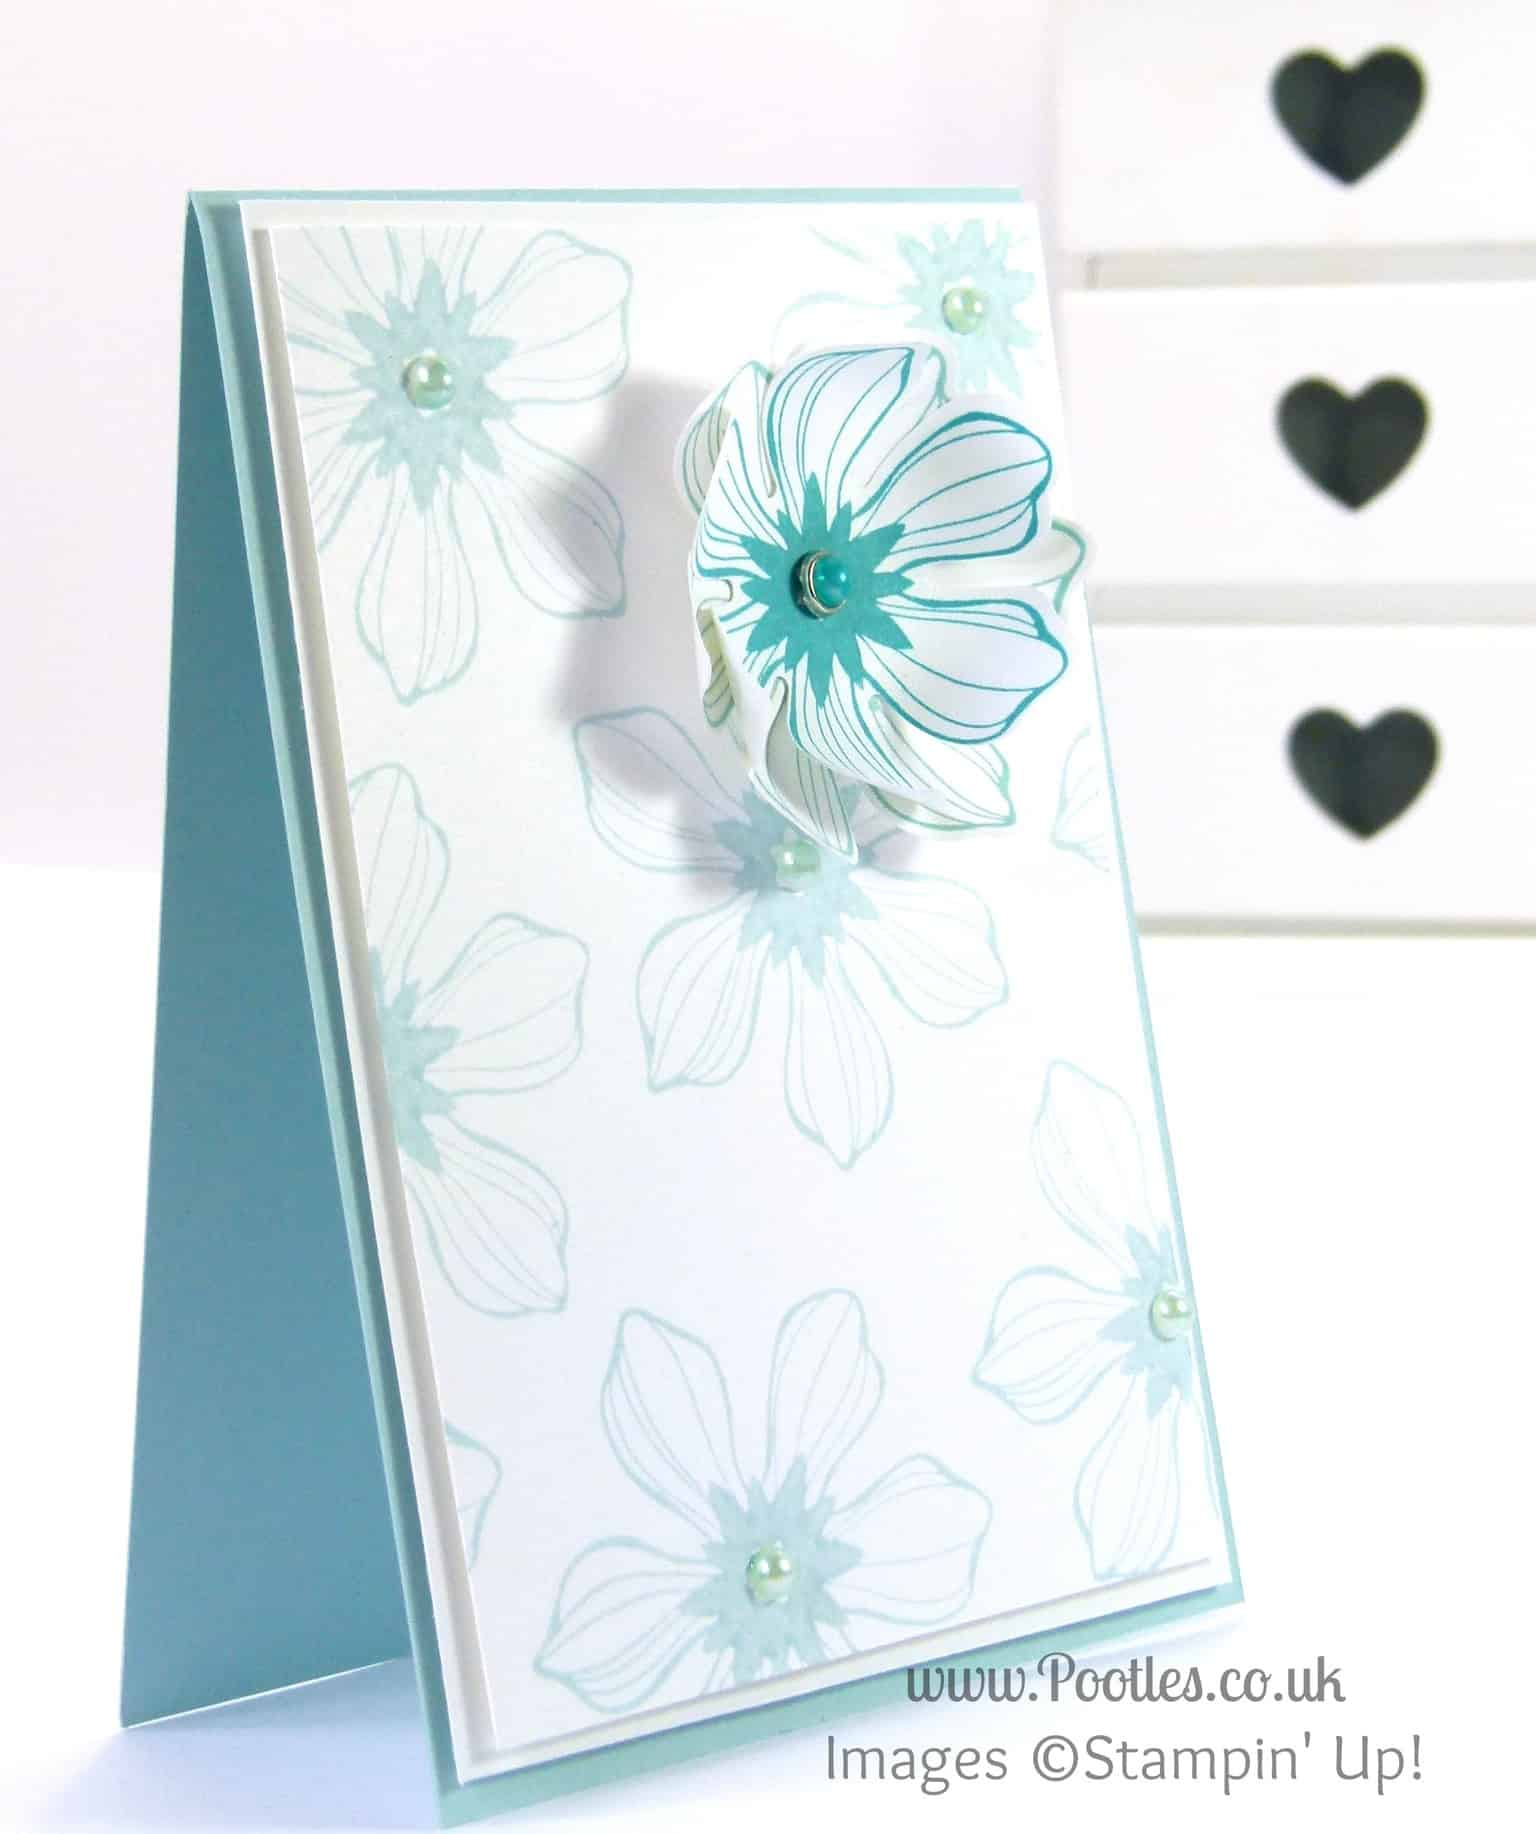 Stampin' Up! UK Demonstrator Pootles - Beautiful Bunch Card using Stampin' Up! Products